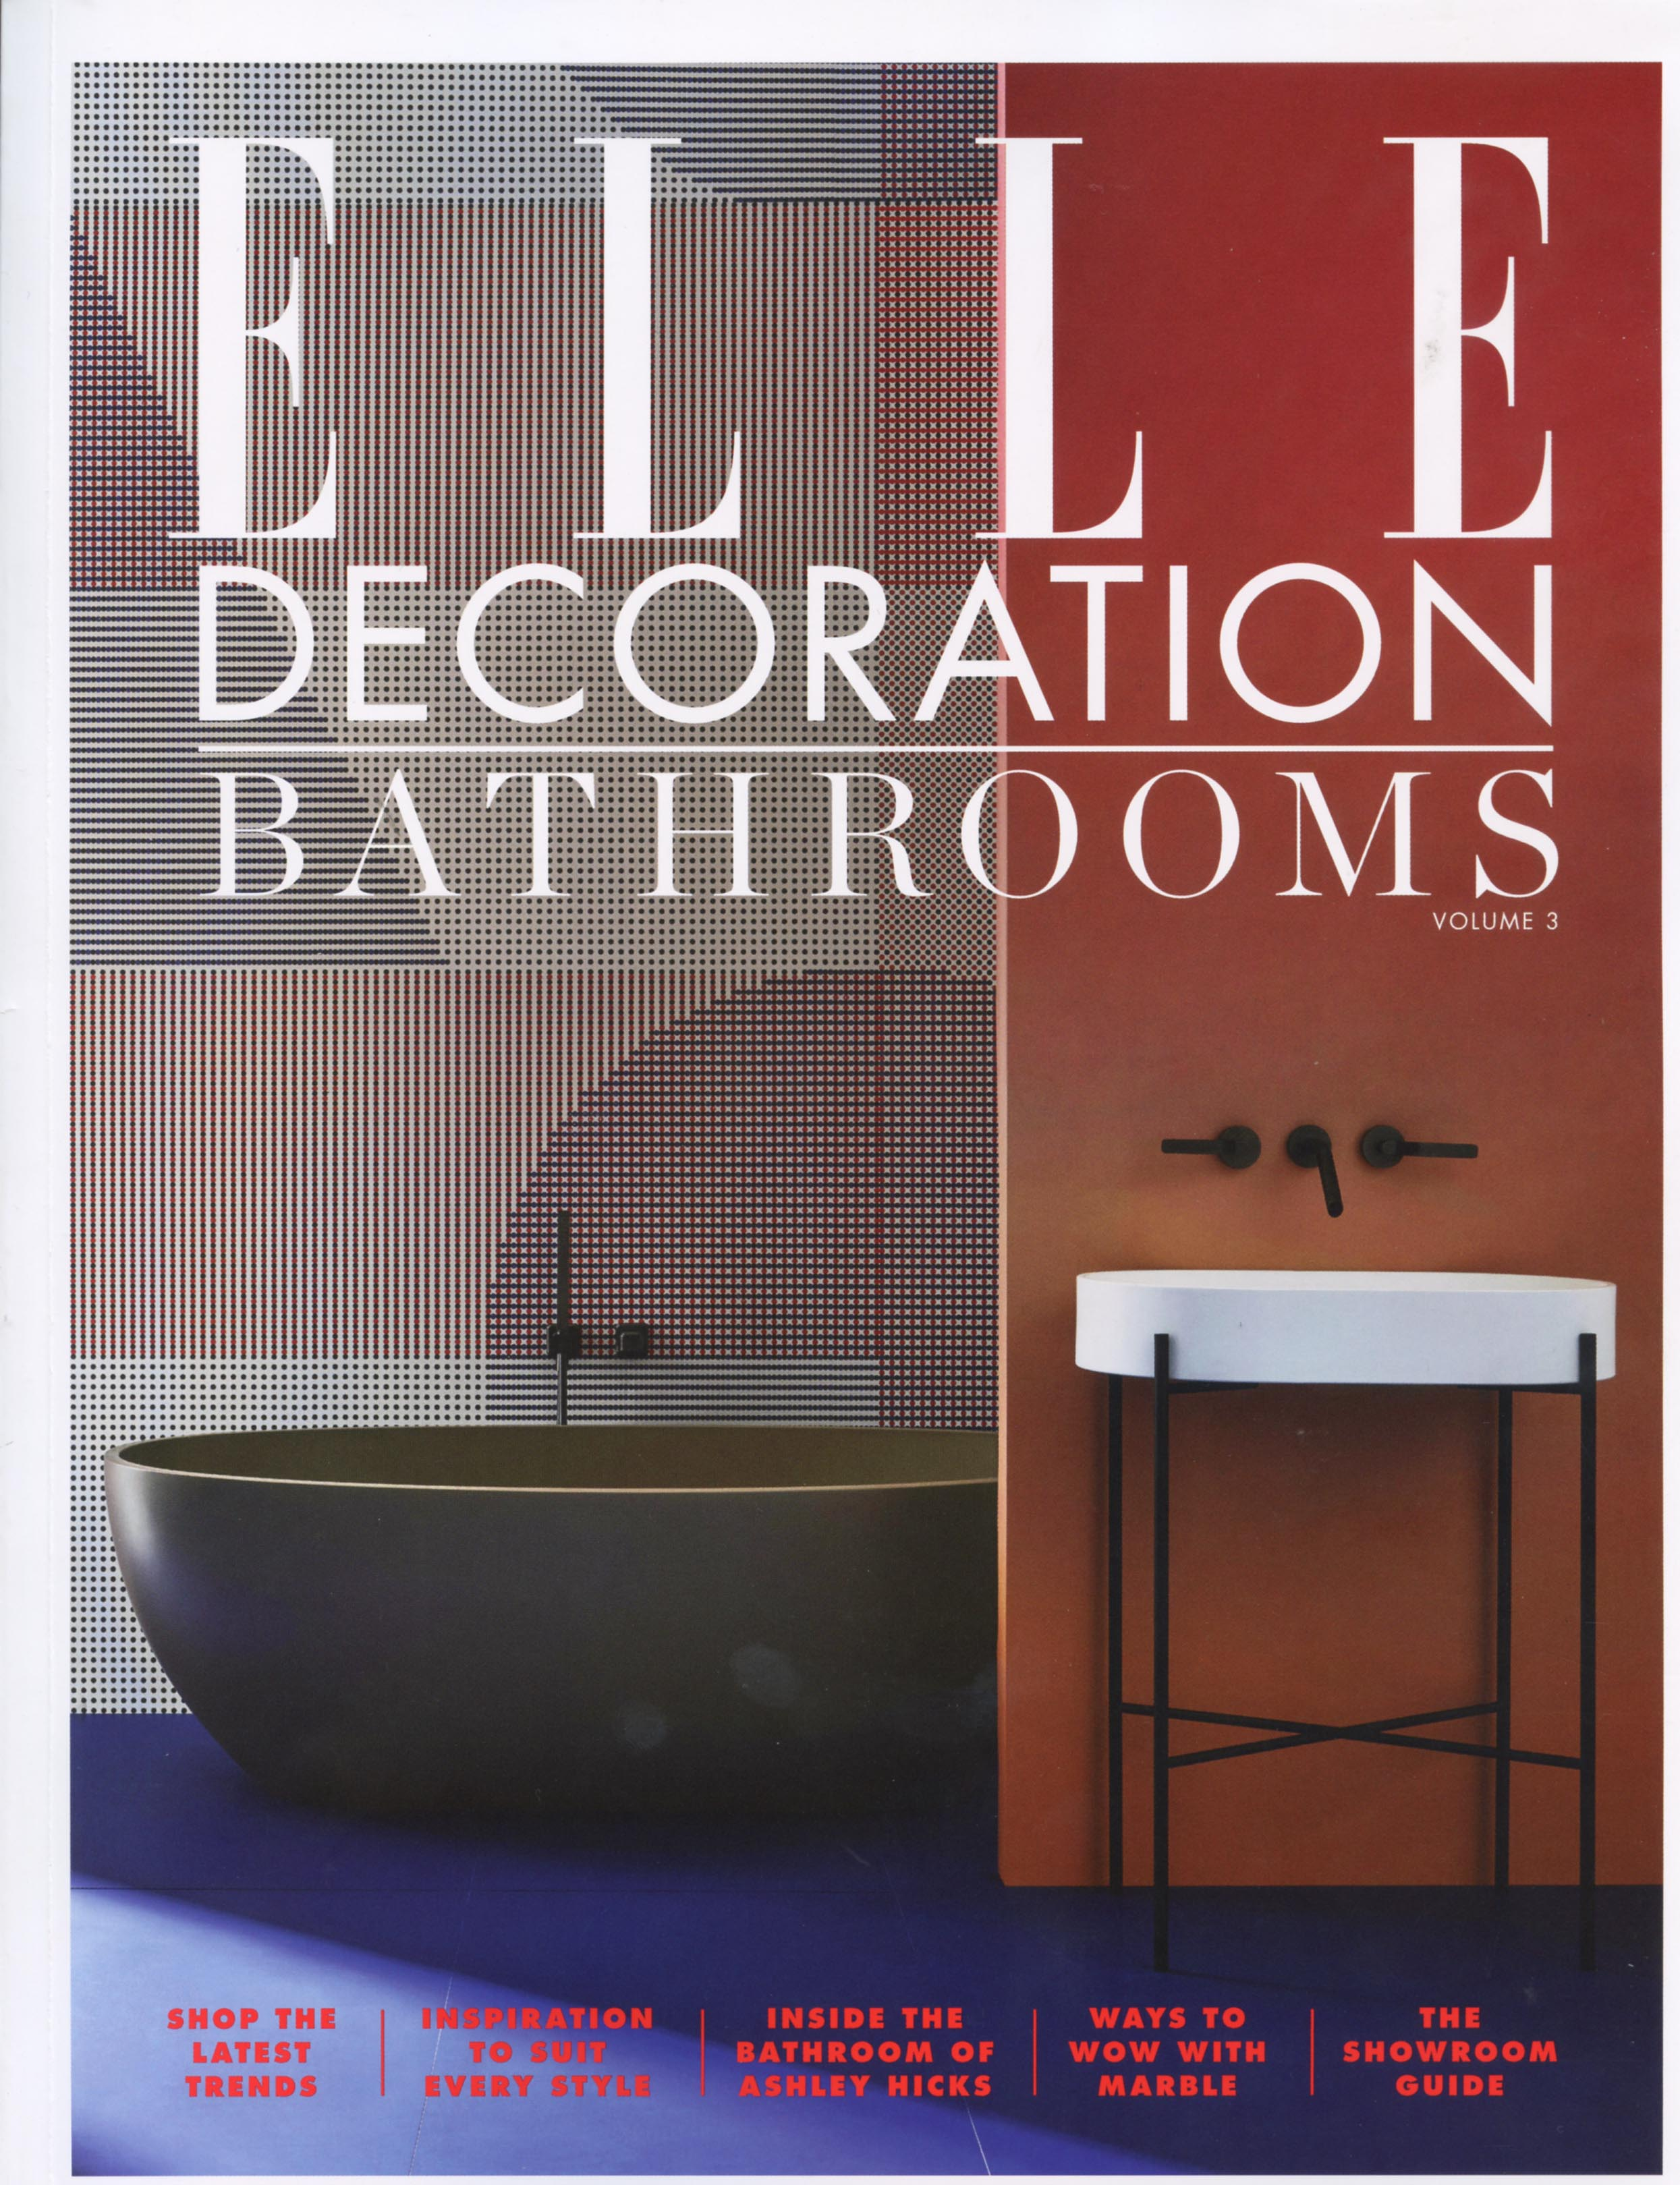 Elle Decoration, Bathroom Supplement October 2018.jpg